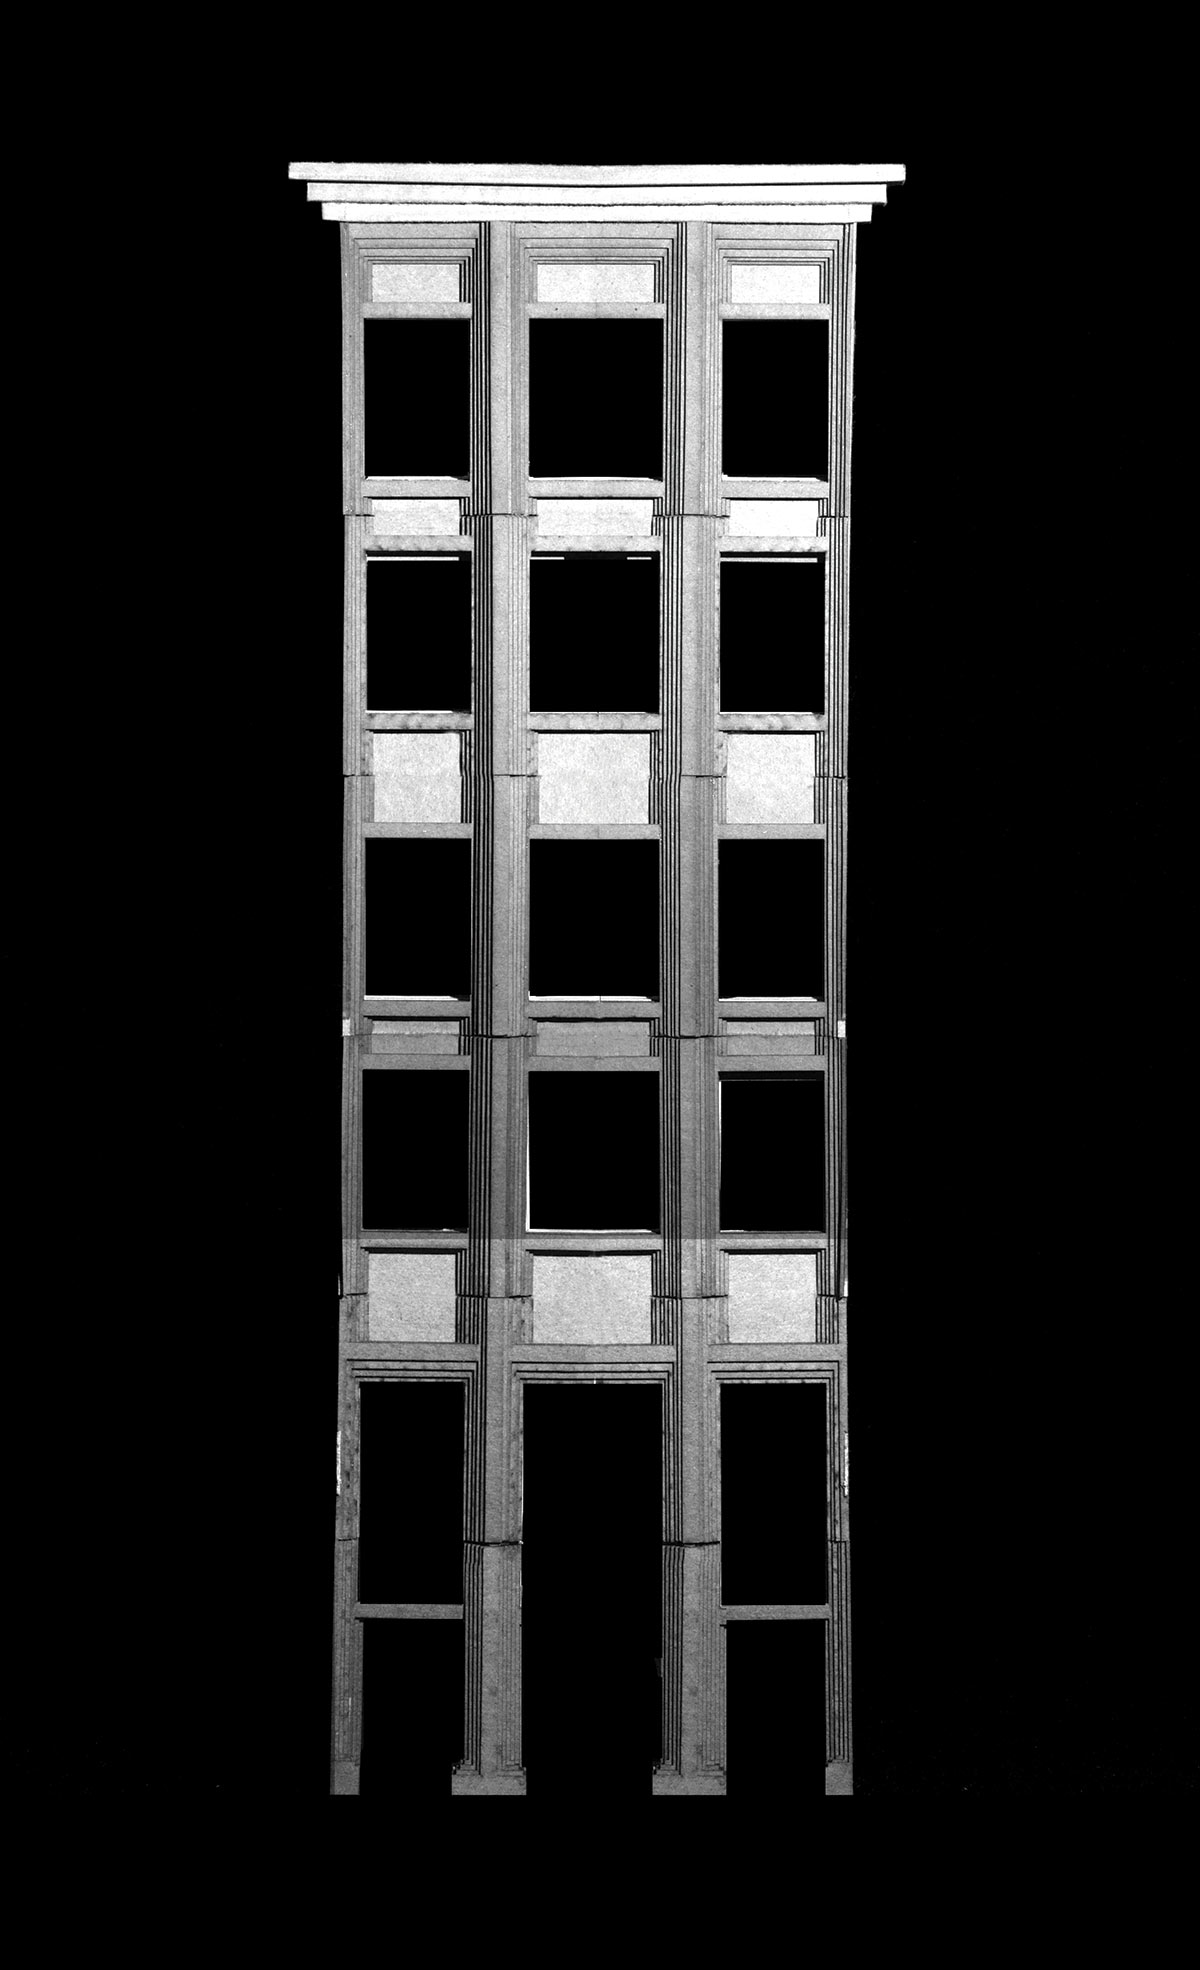 black and white image of a wooden model of a building with 12 windows (4 rows of 3)